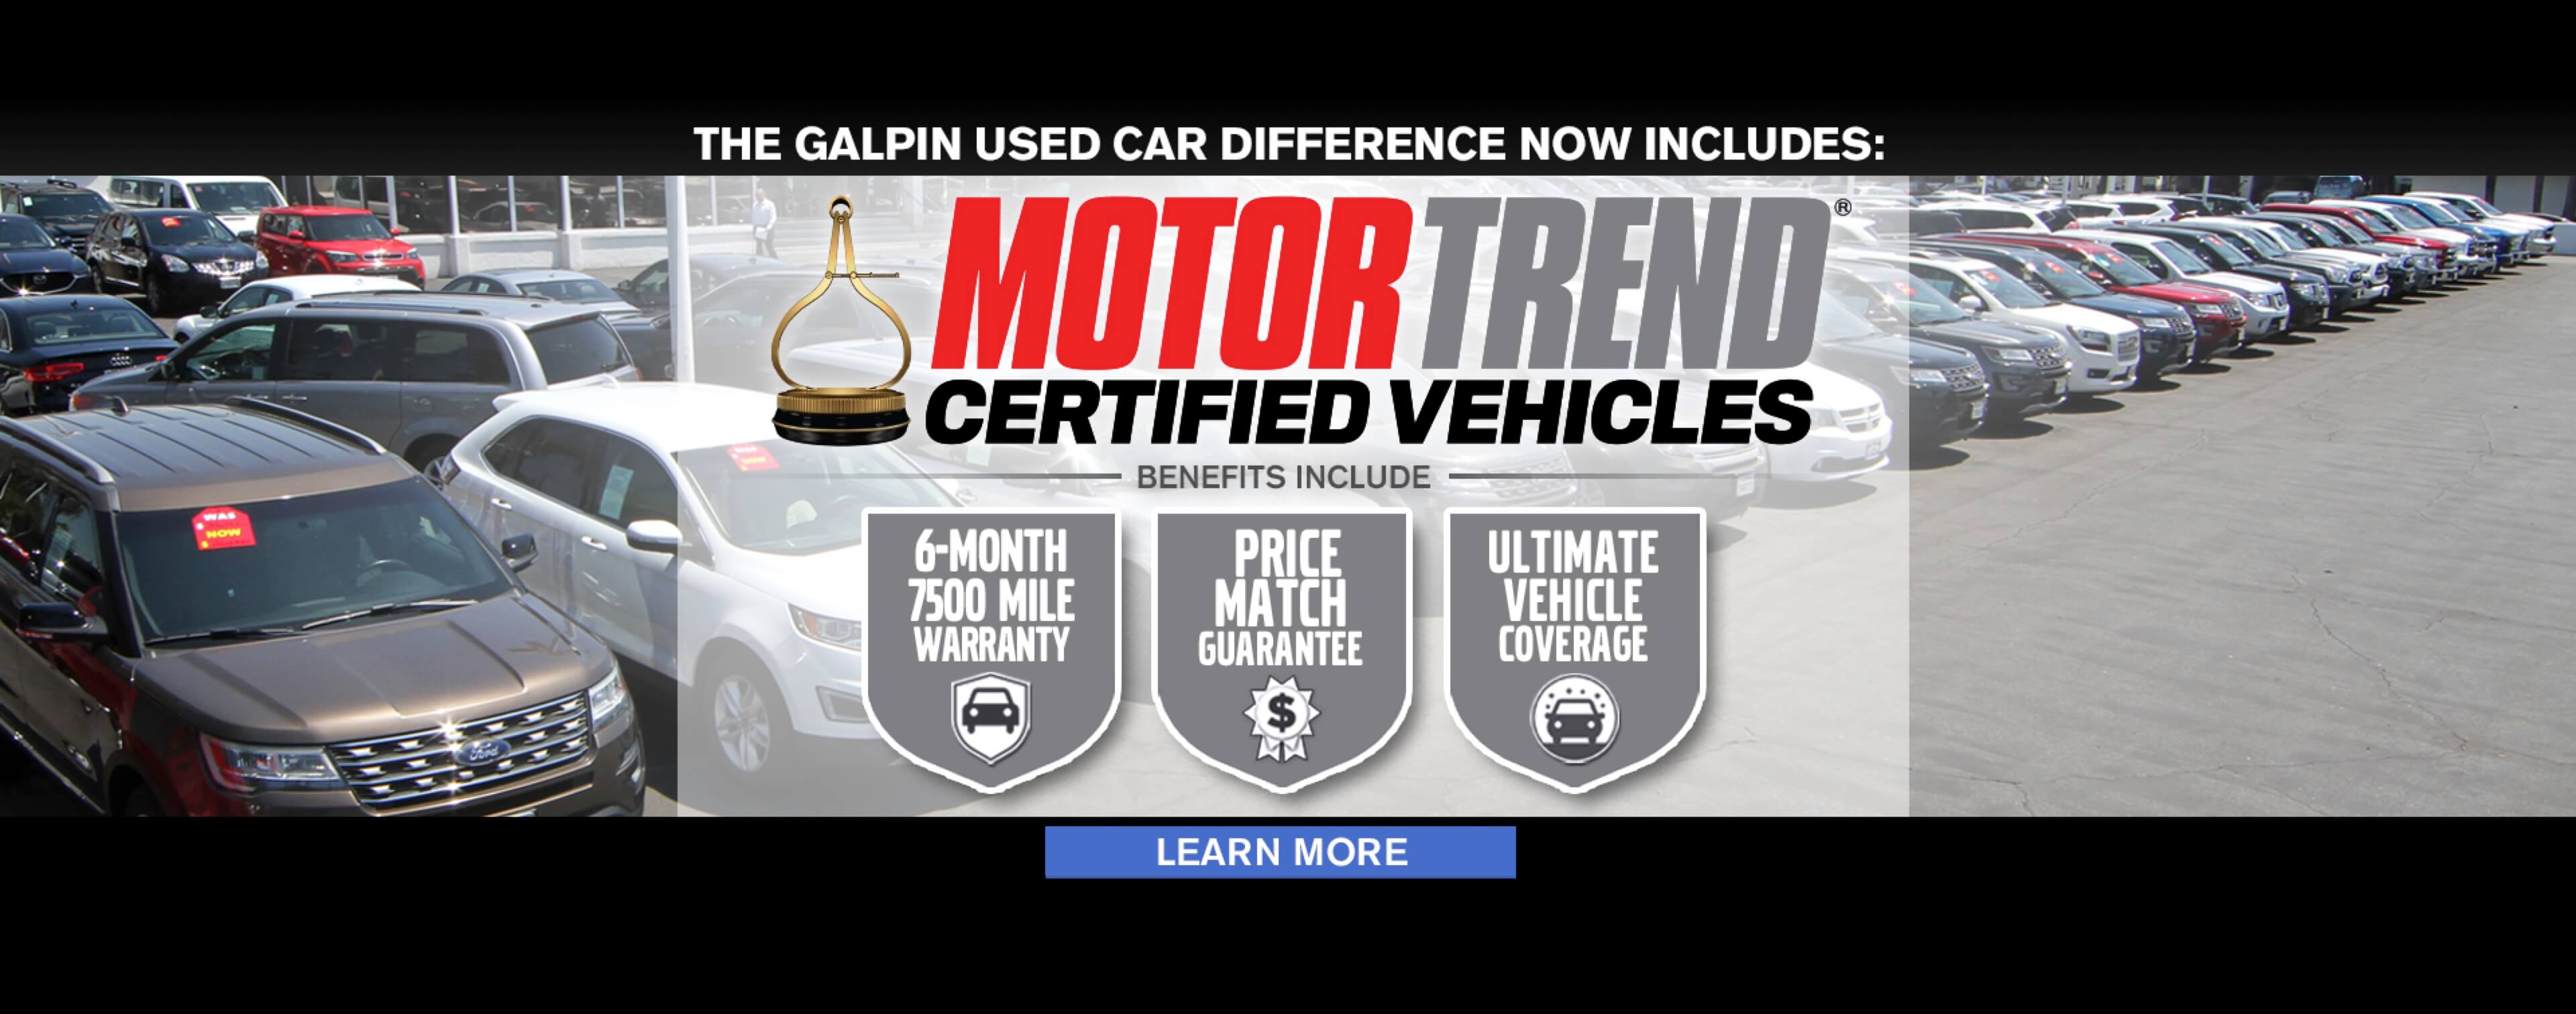 Volvo Dealerships In California >> Galpin Volvo Dealership In Van Nuys Sales Lease Service